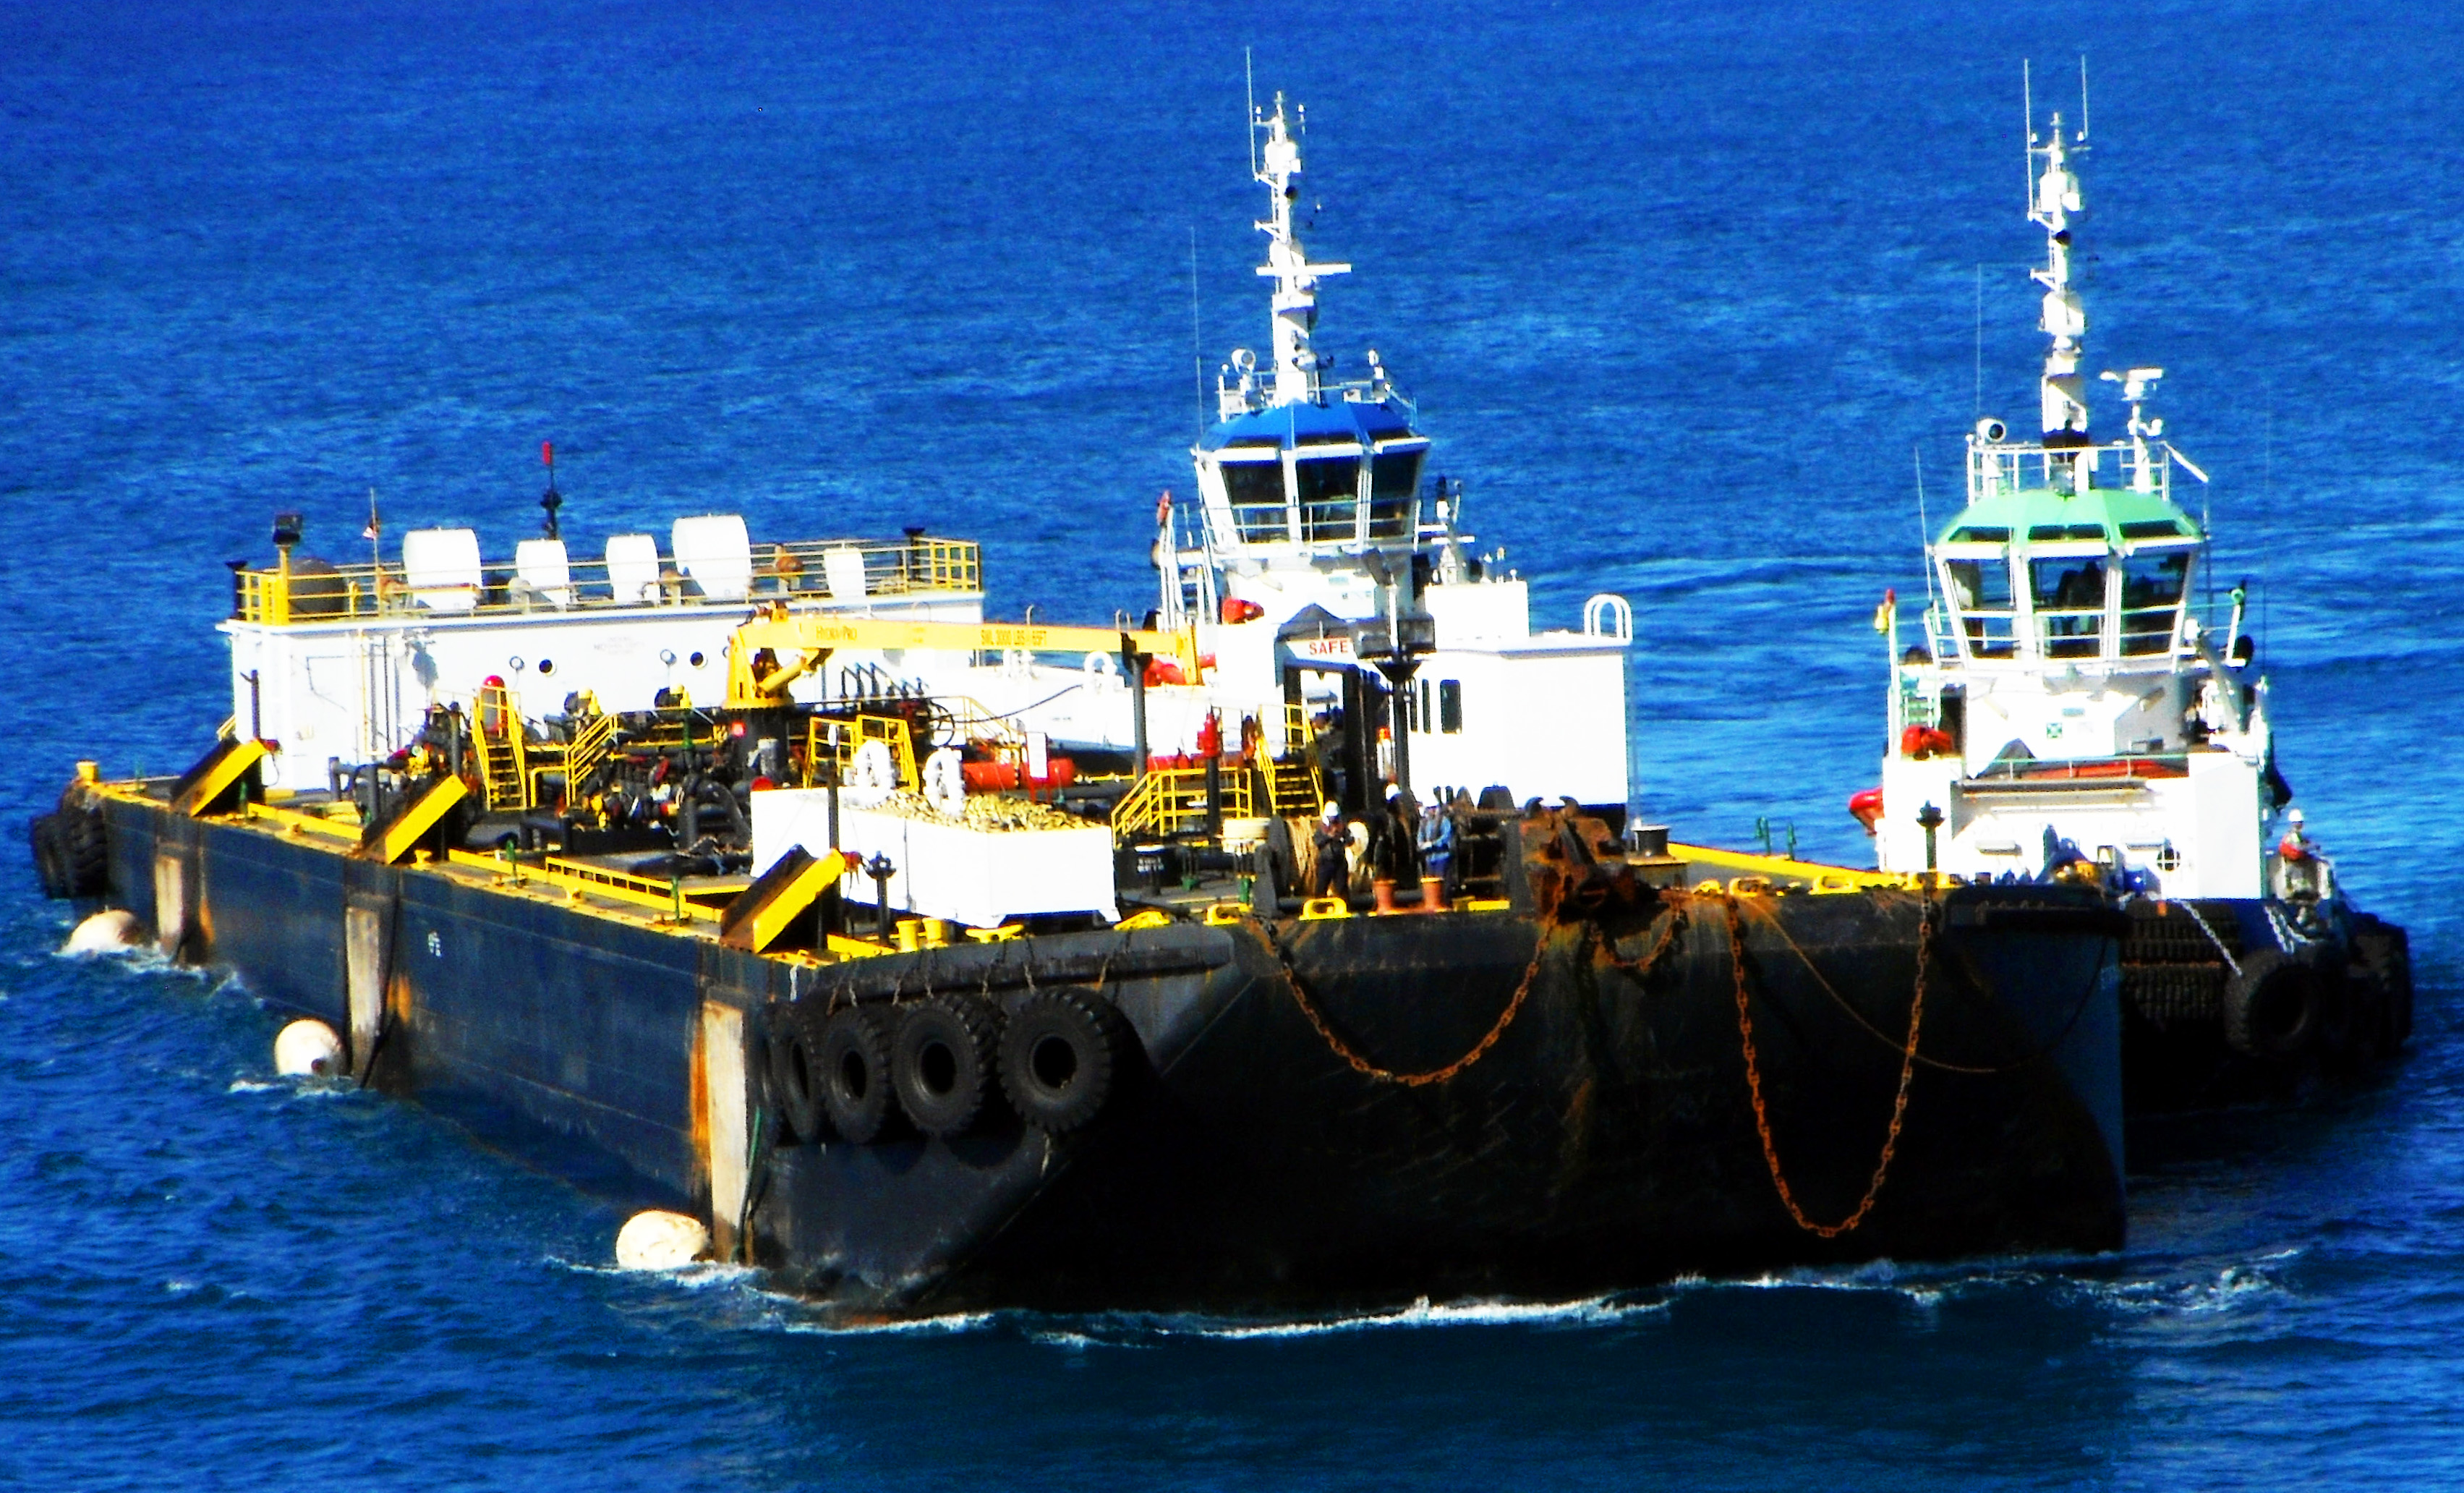 Two Tugs Maneuvering Fuel Barge In St Maarten